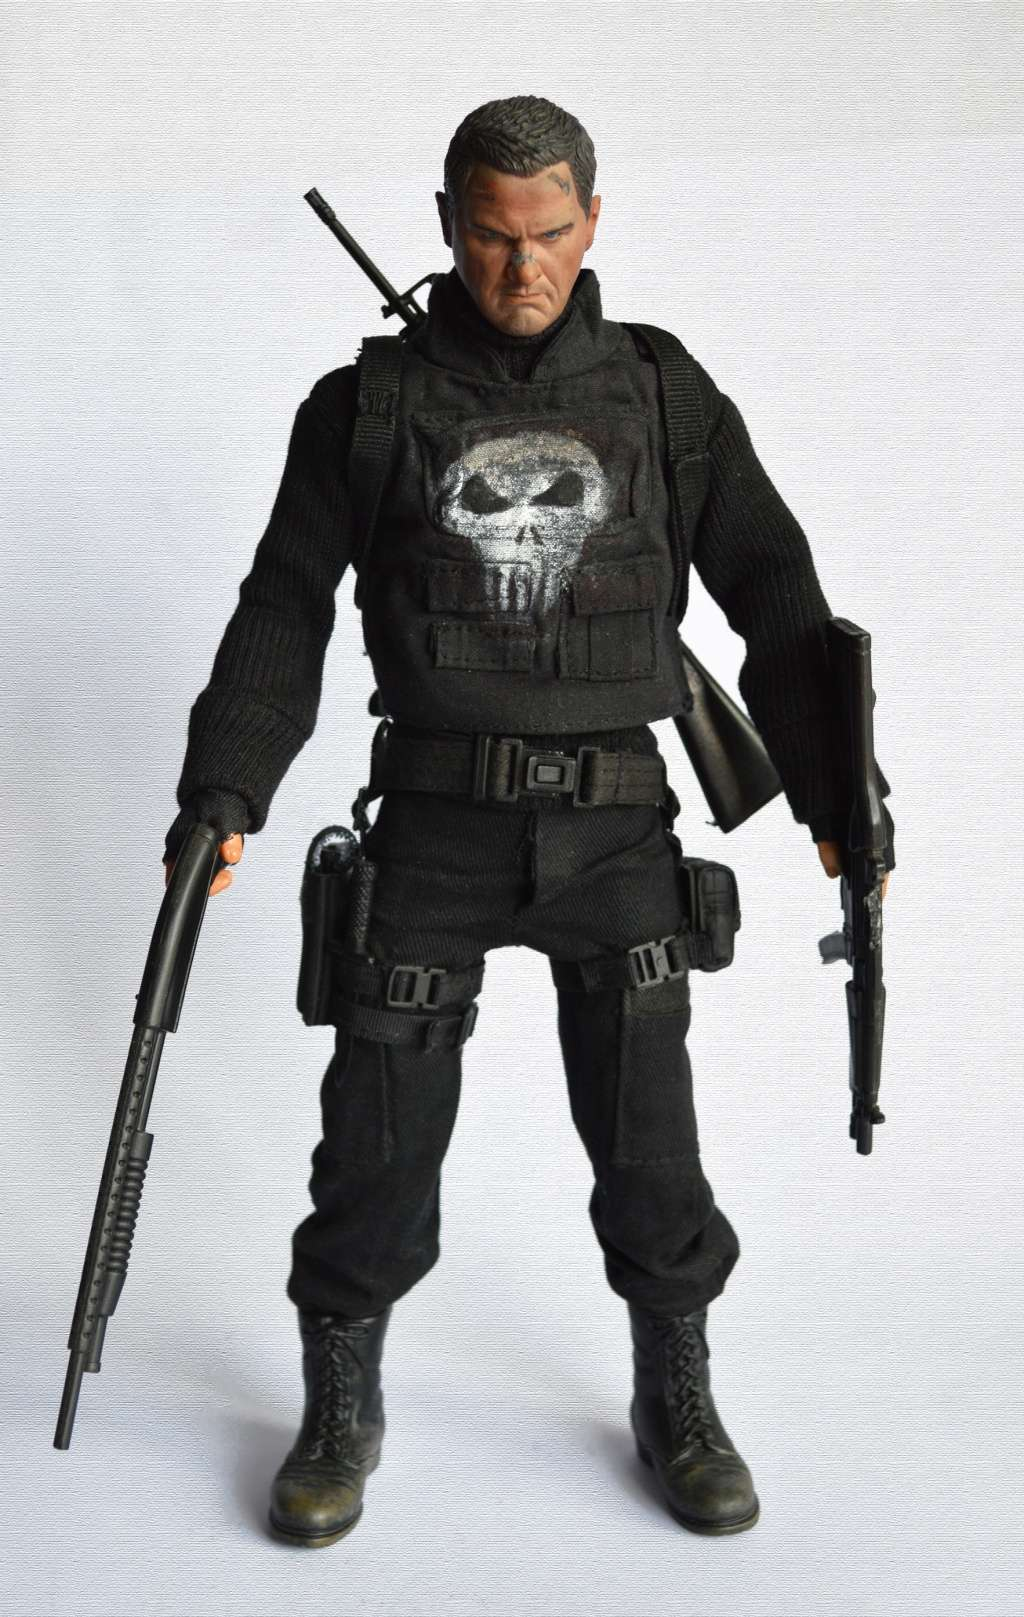 PUNISHER CUSTOM 1/6 12 inch, 30 cm 311